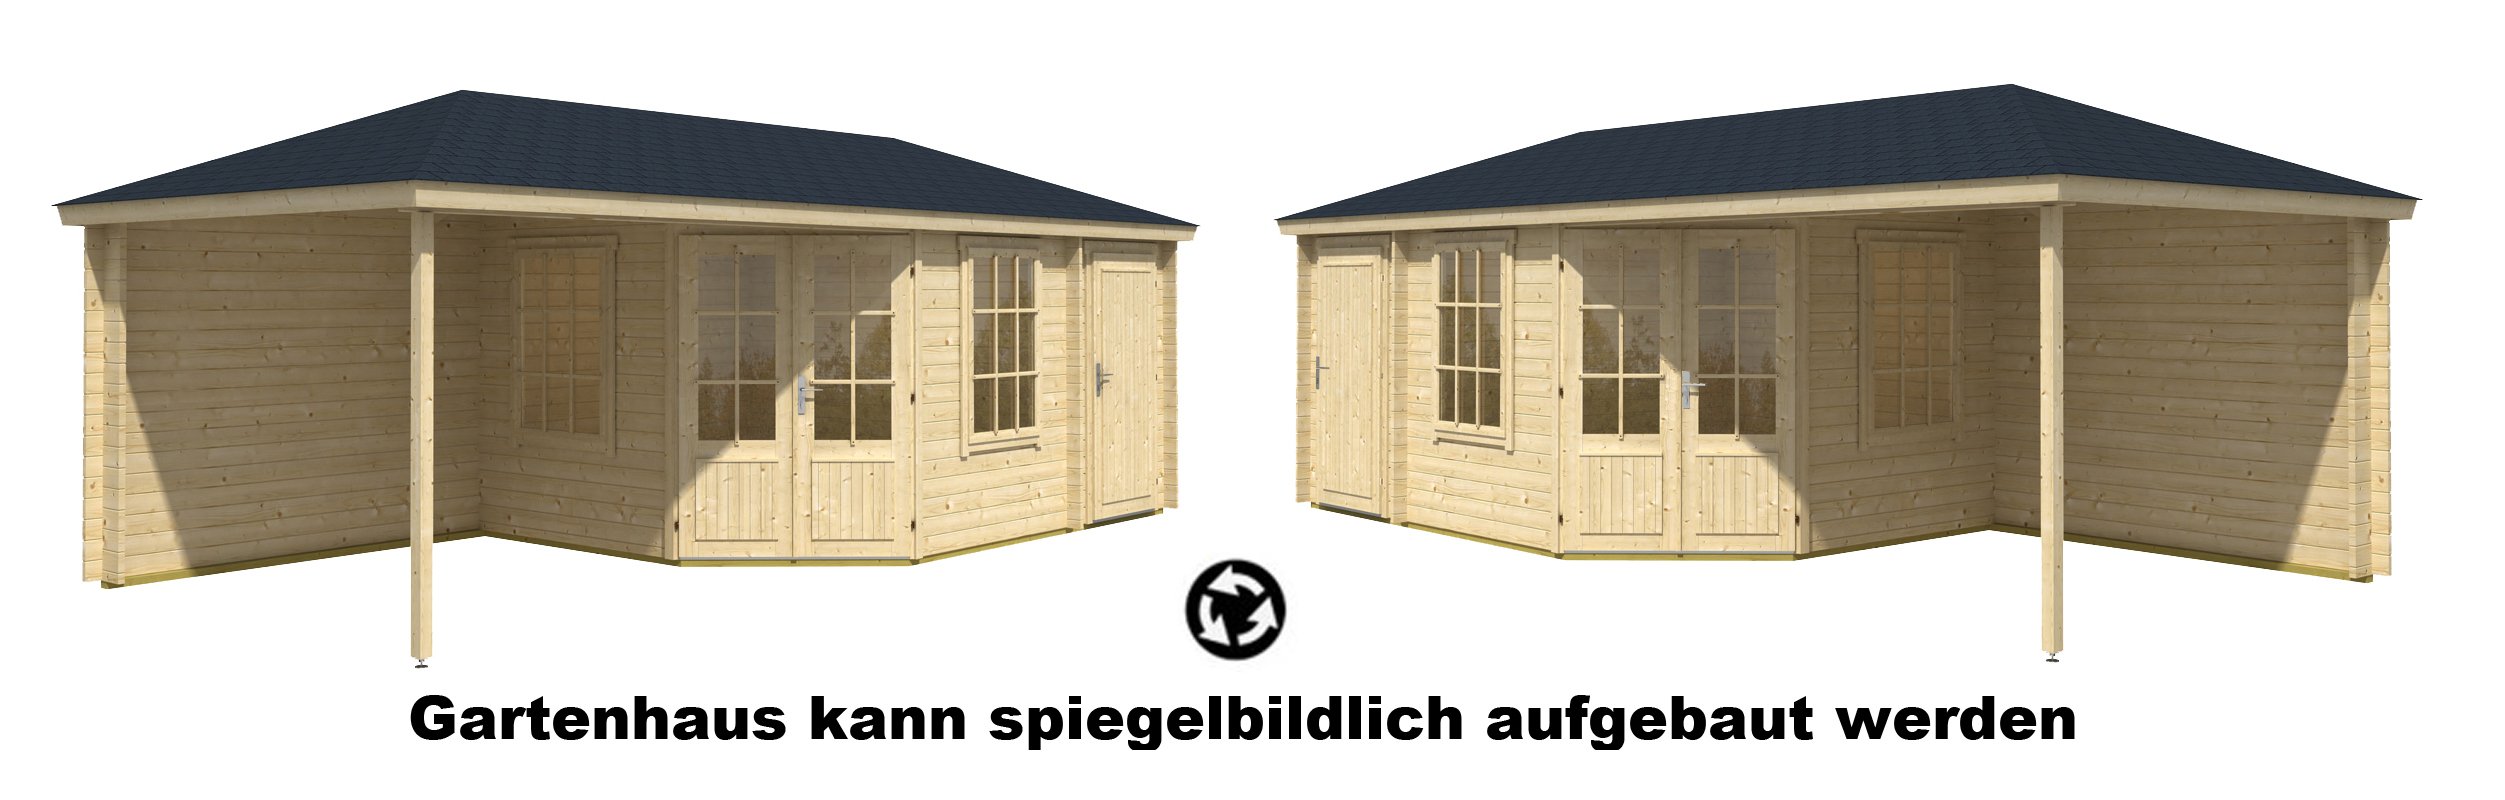 5 eck gartenhaus modell rhein 40 mit anbau 5 eck. Black Bedroom Furniture Sets. Home Design Ideas